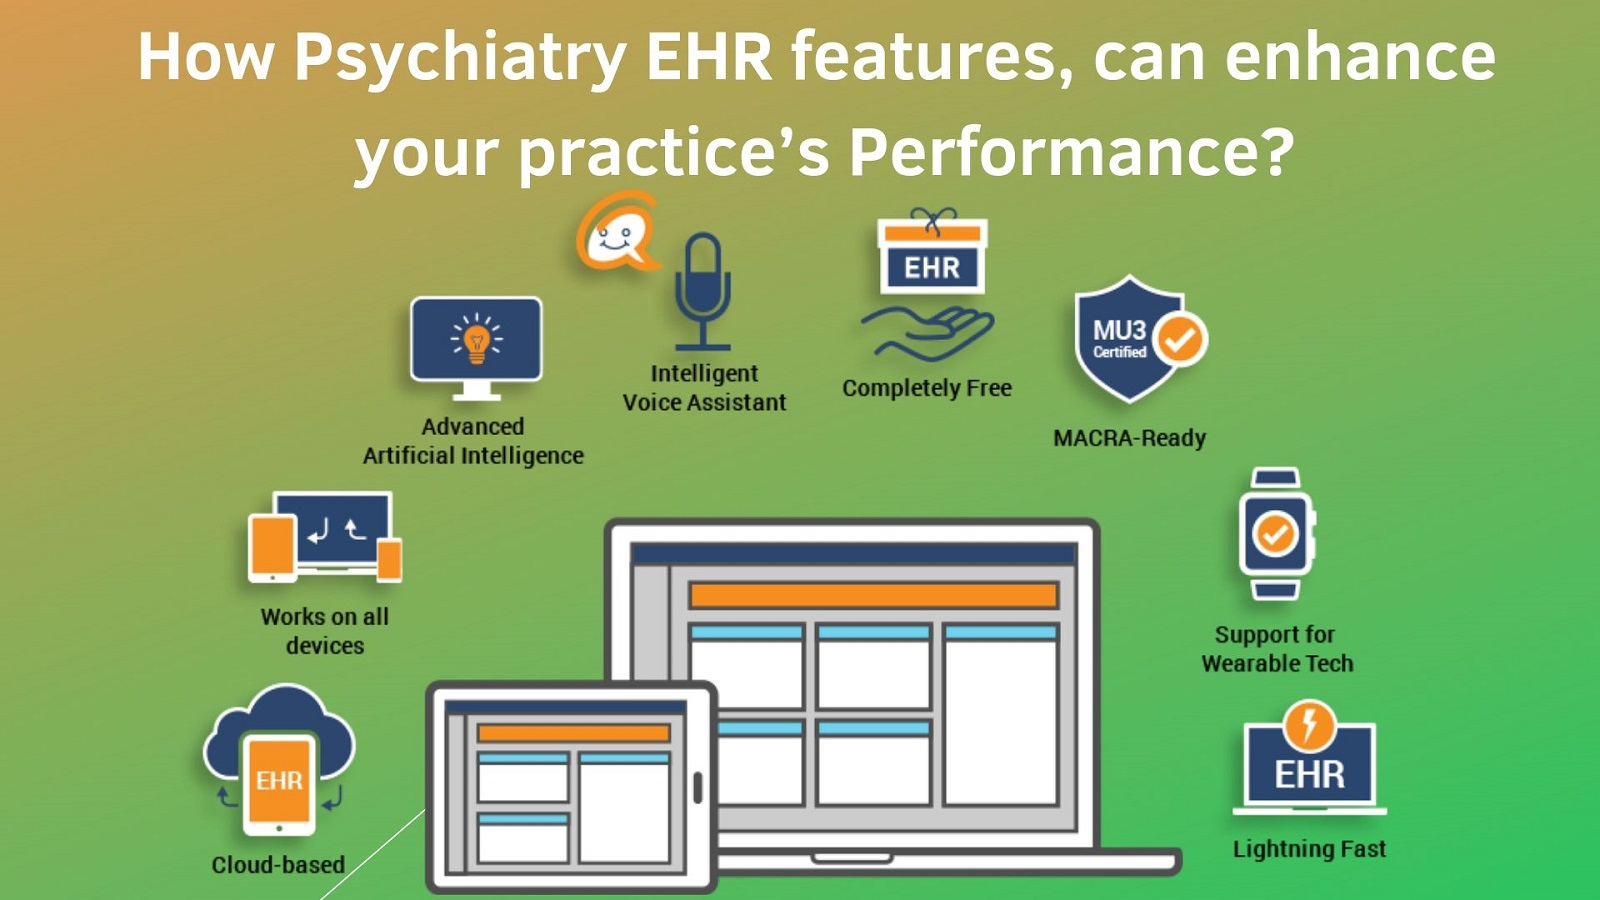 iPatientCare Blog - How Psychiatry EHR features can enhance your practice's Performance